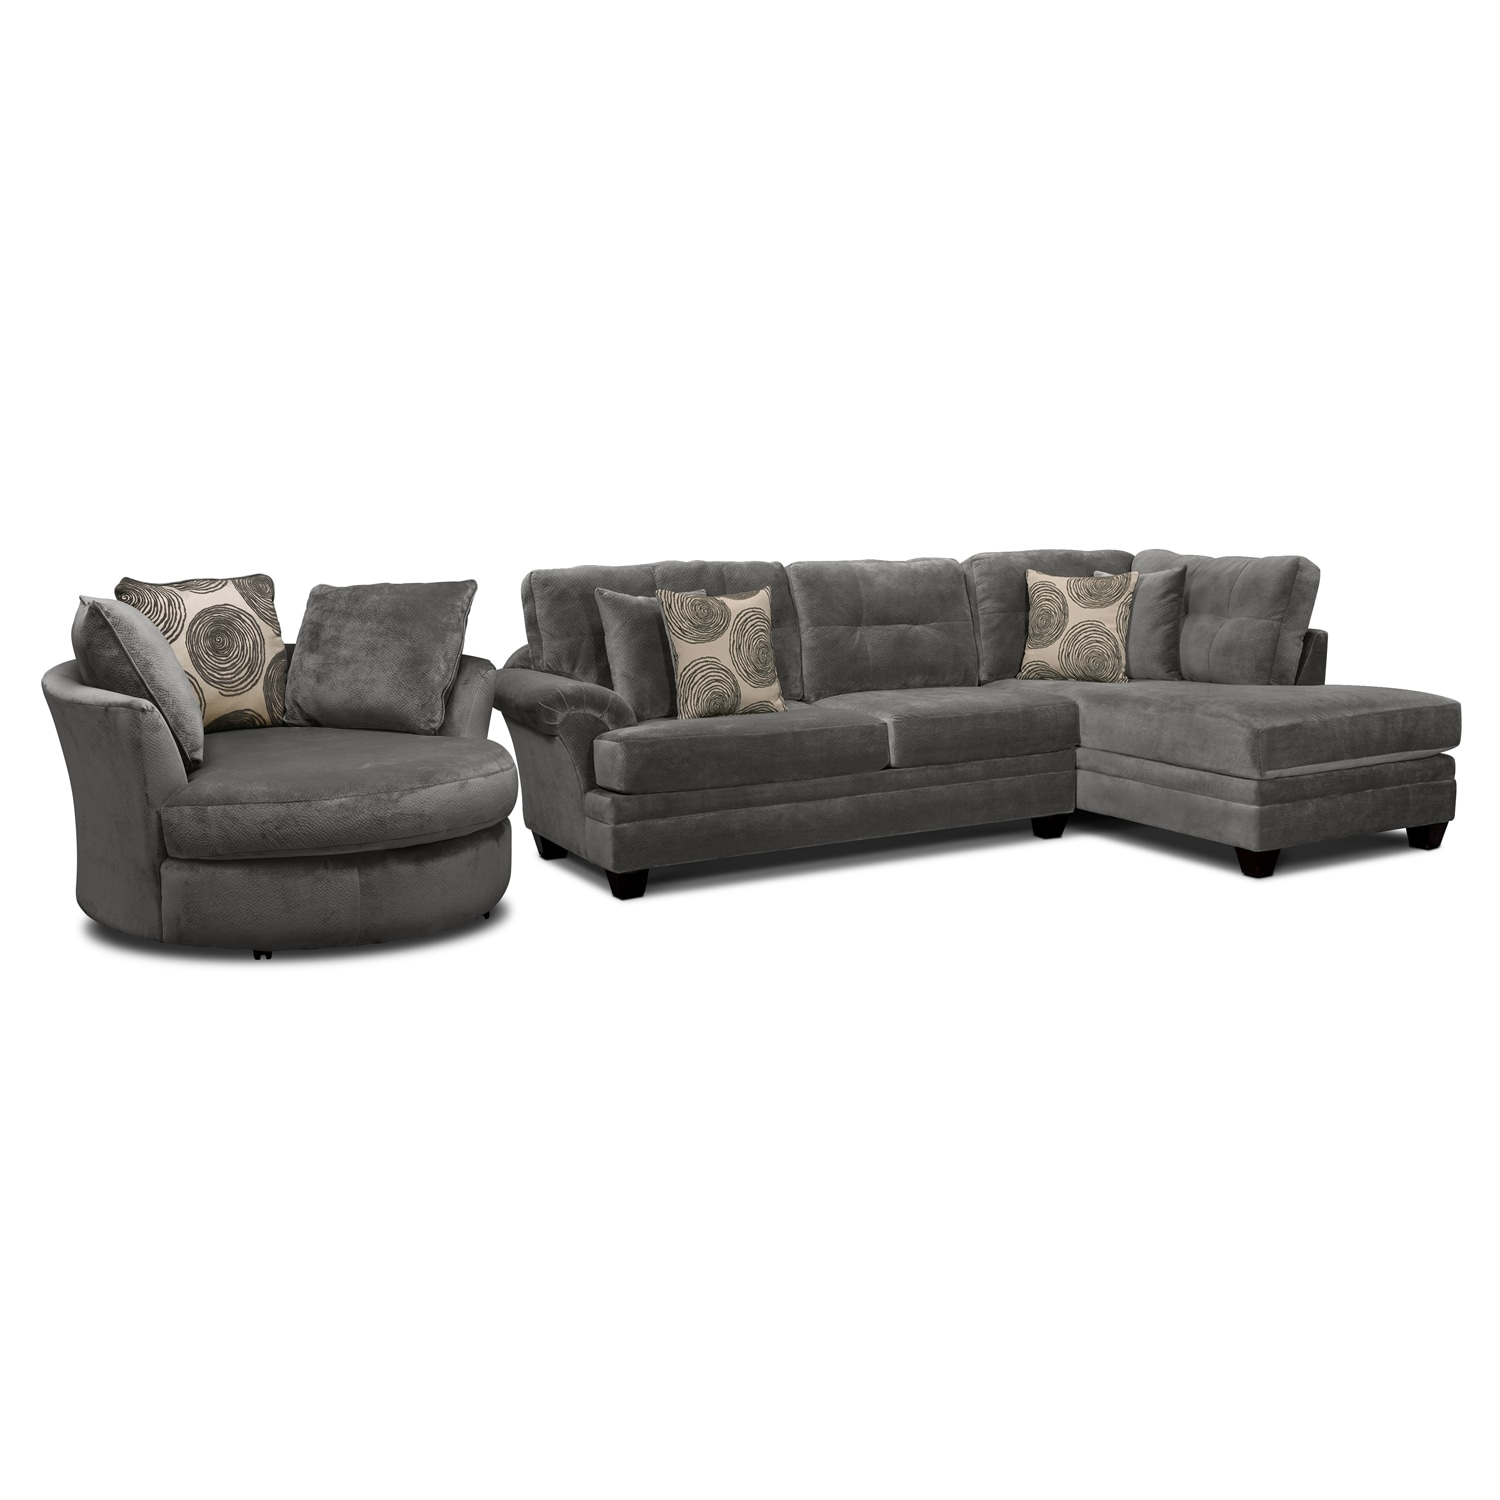 Living Room Furniture - Cordelle 2-Piece Right-Facing Chaise Sectional and Swivel Chair Set - Gray